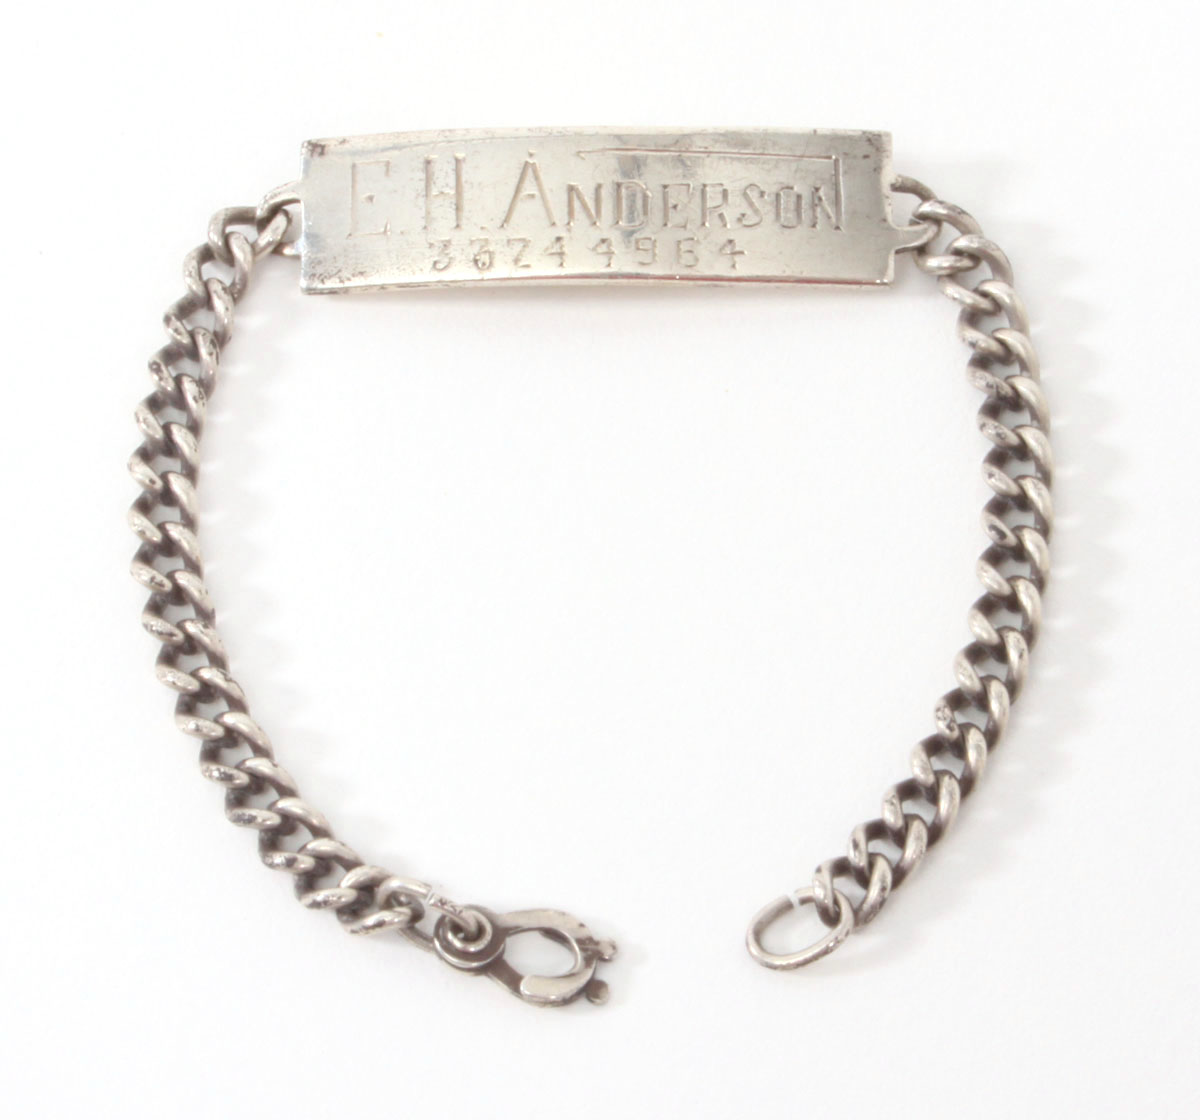 alert id bracelet to fran the medical silver shop return elegant medic sender identification